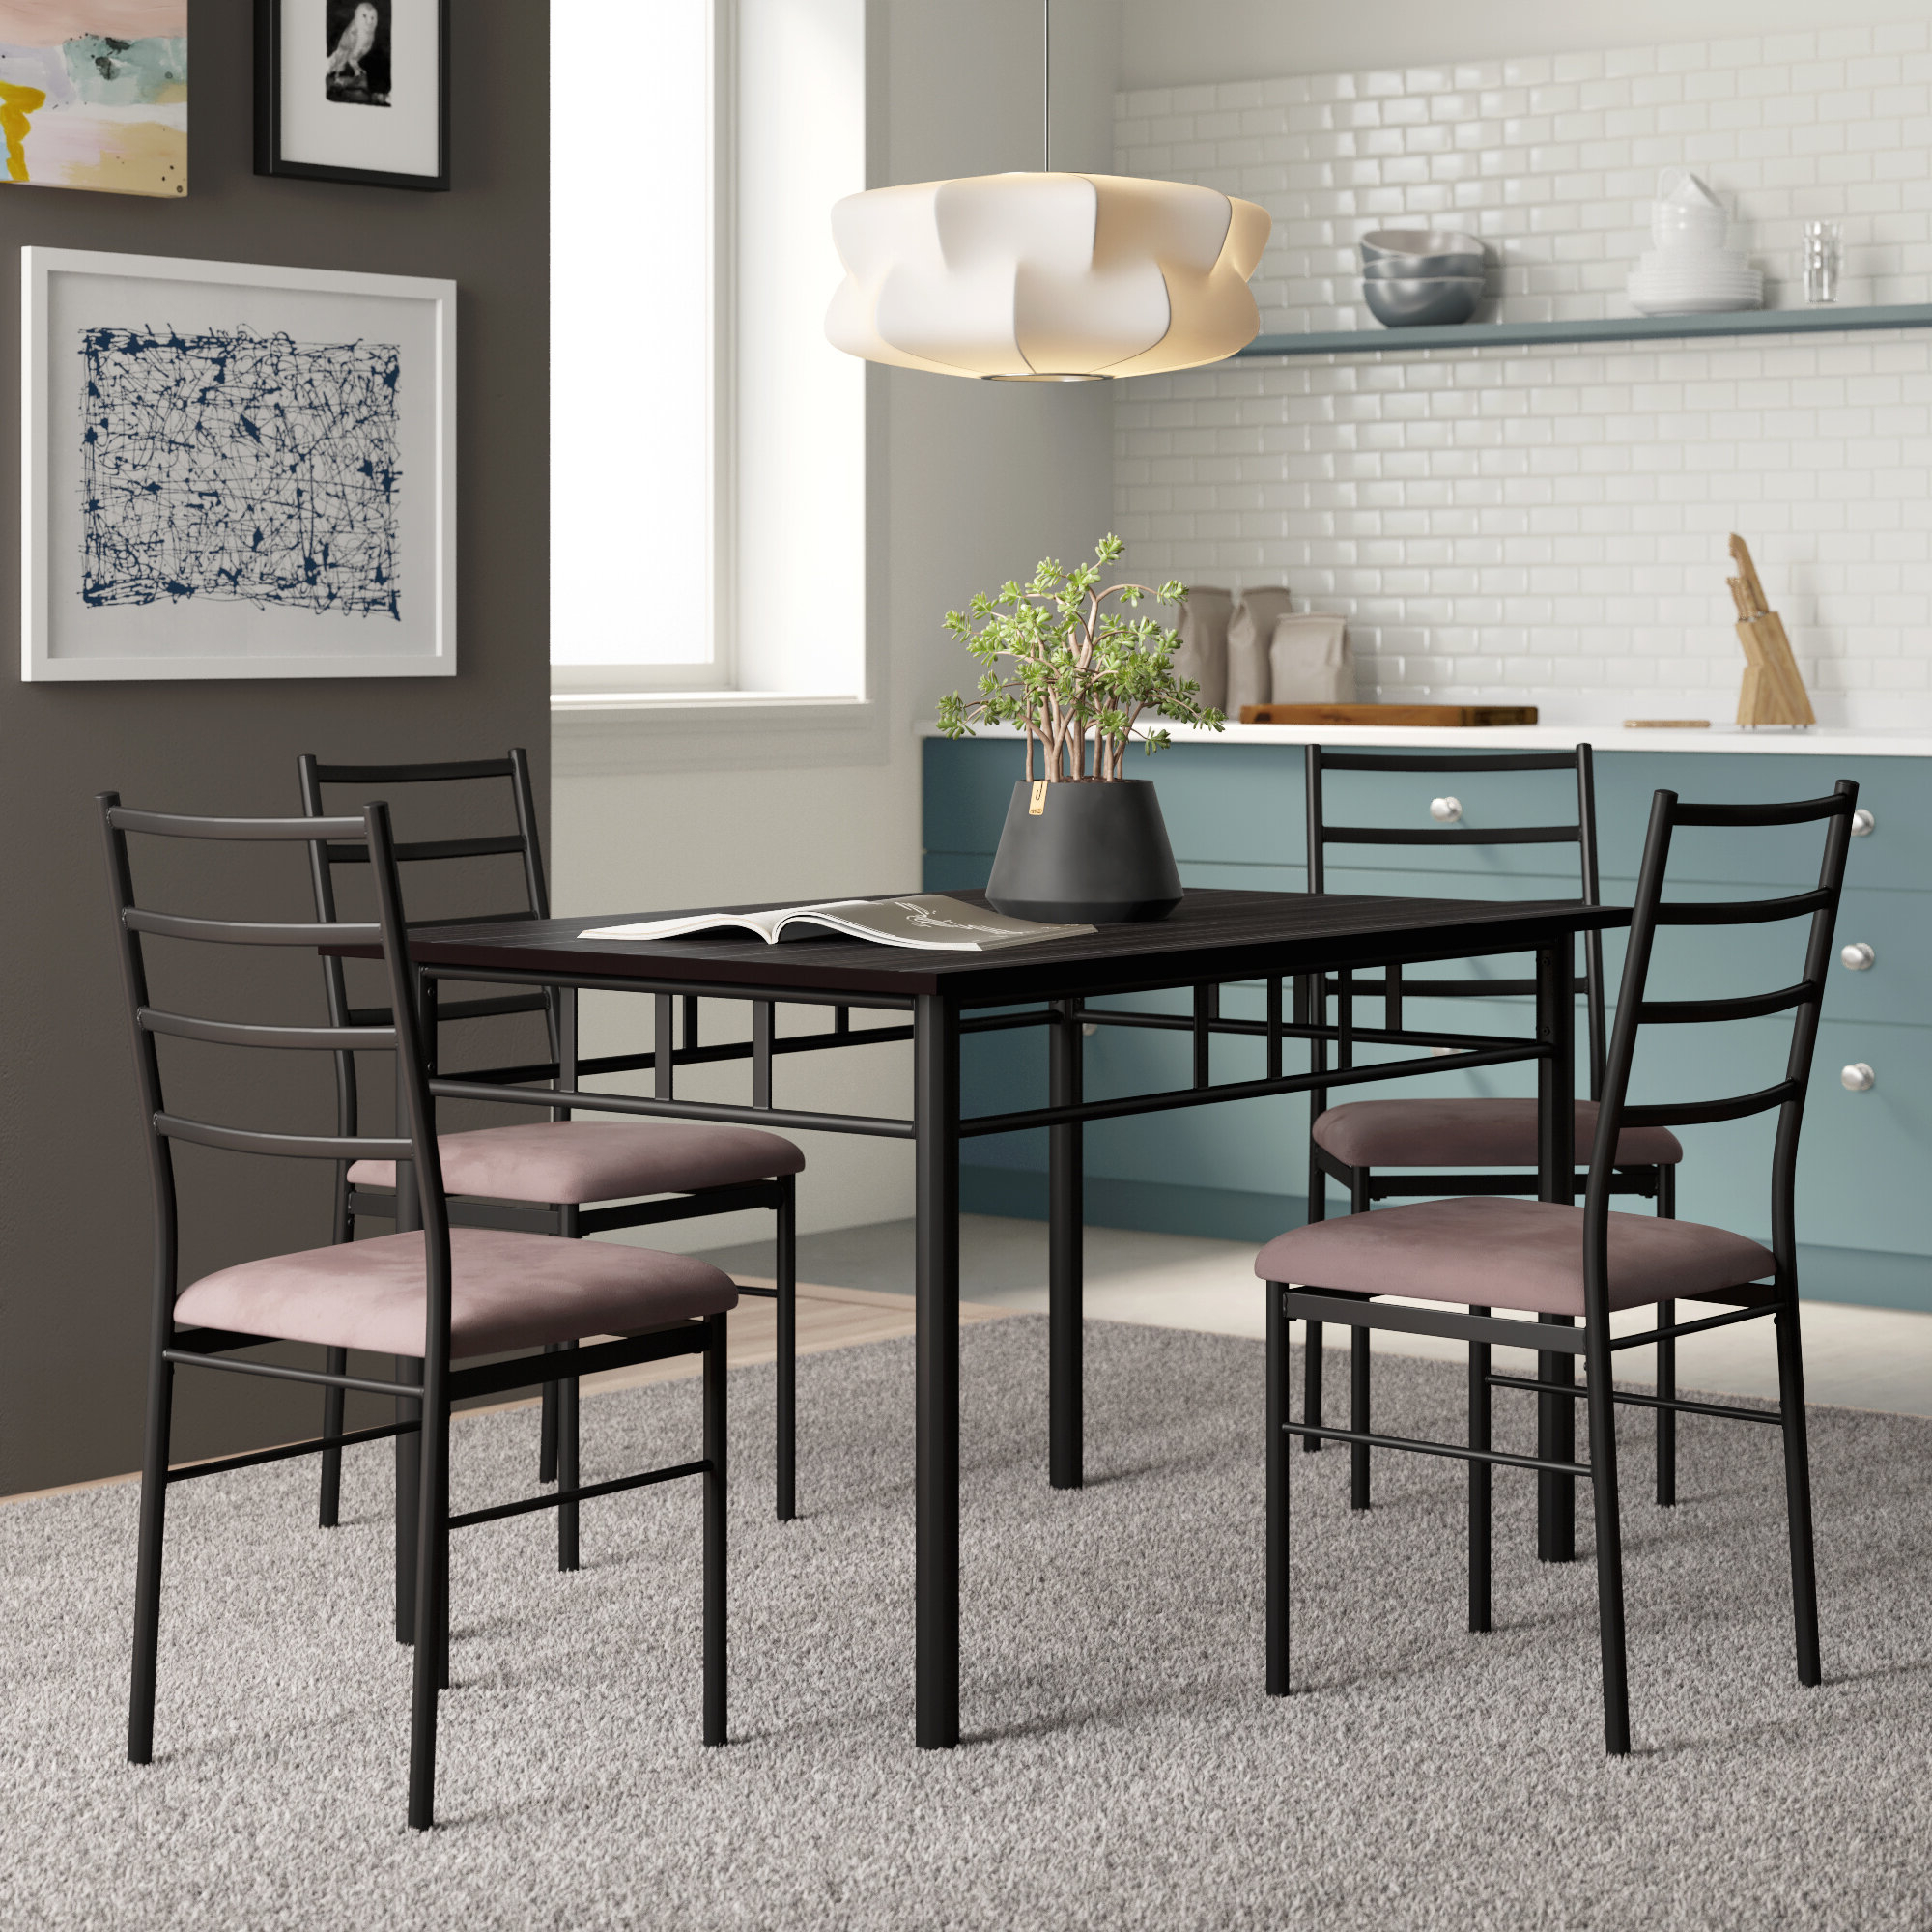 Mulvey 5 Piece Dining Sets Pertaining To Well Known Jarrod 5 Piece Dining Set (View 12 of 20)